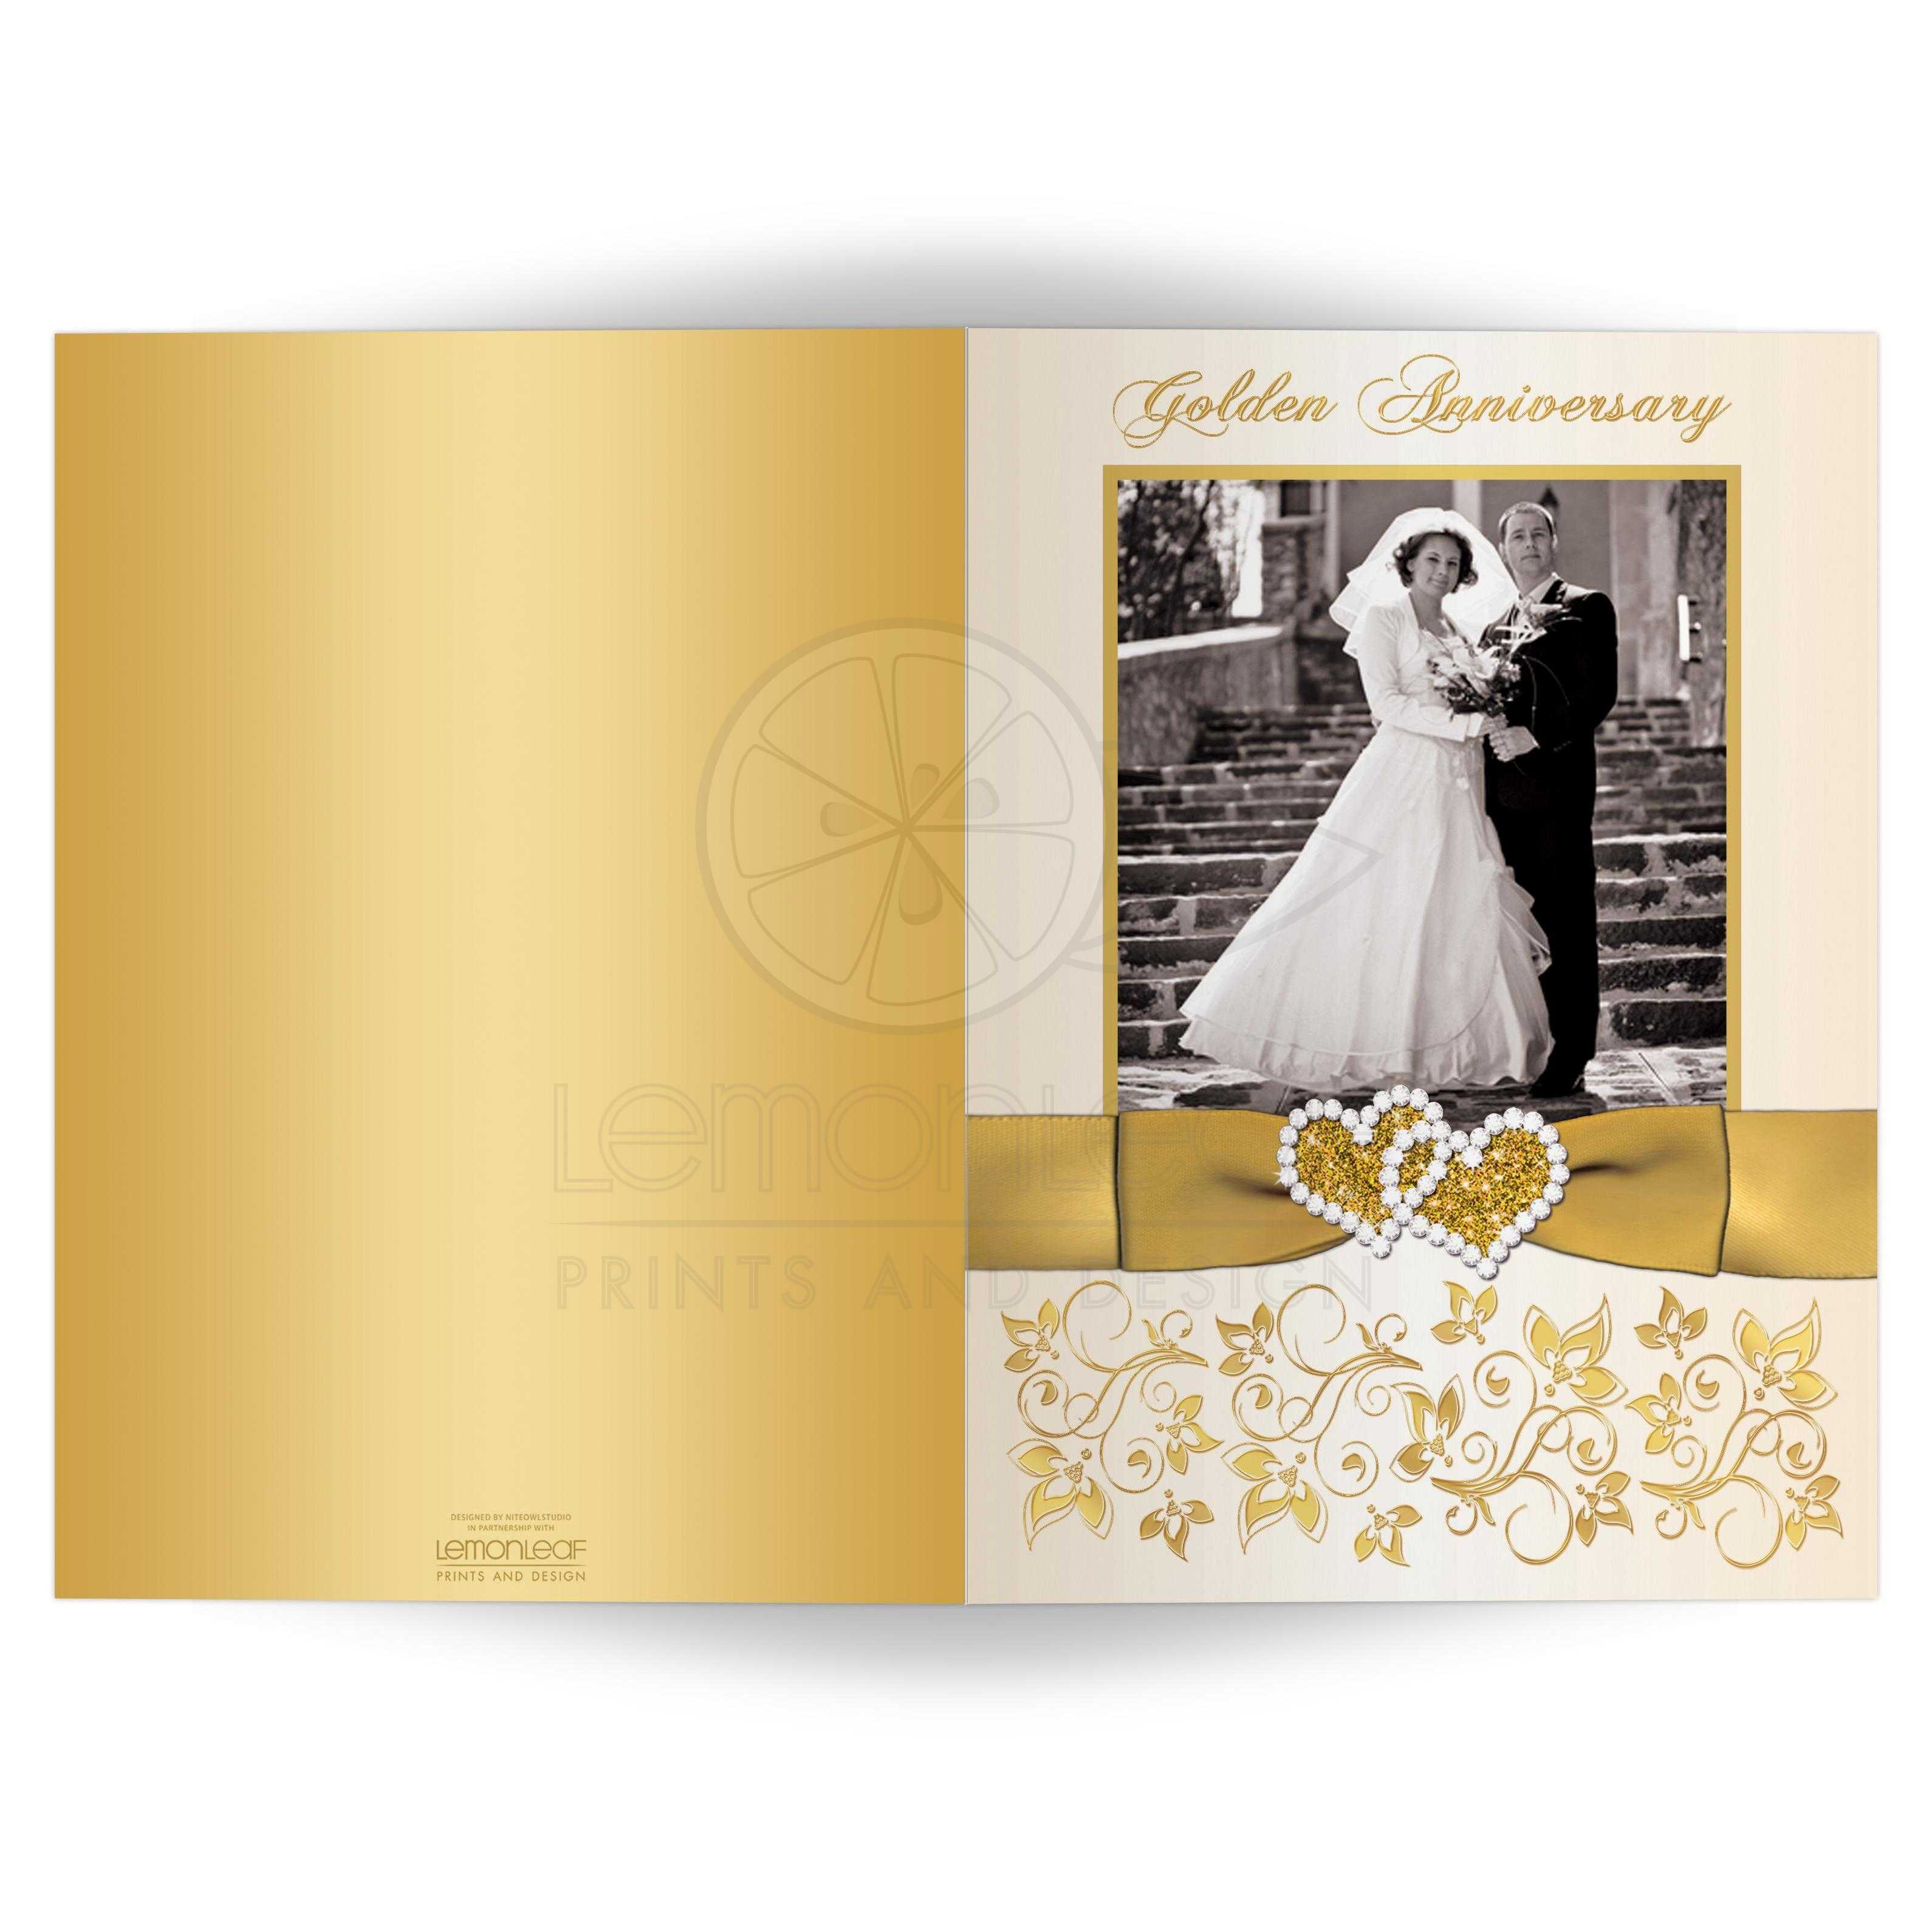 50th Wedding Anniversary Invitation Double Photo Ivory Gold Floral Printed Bow Joined Hearts